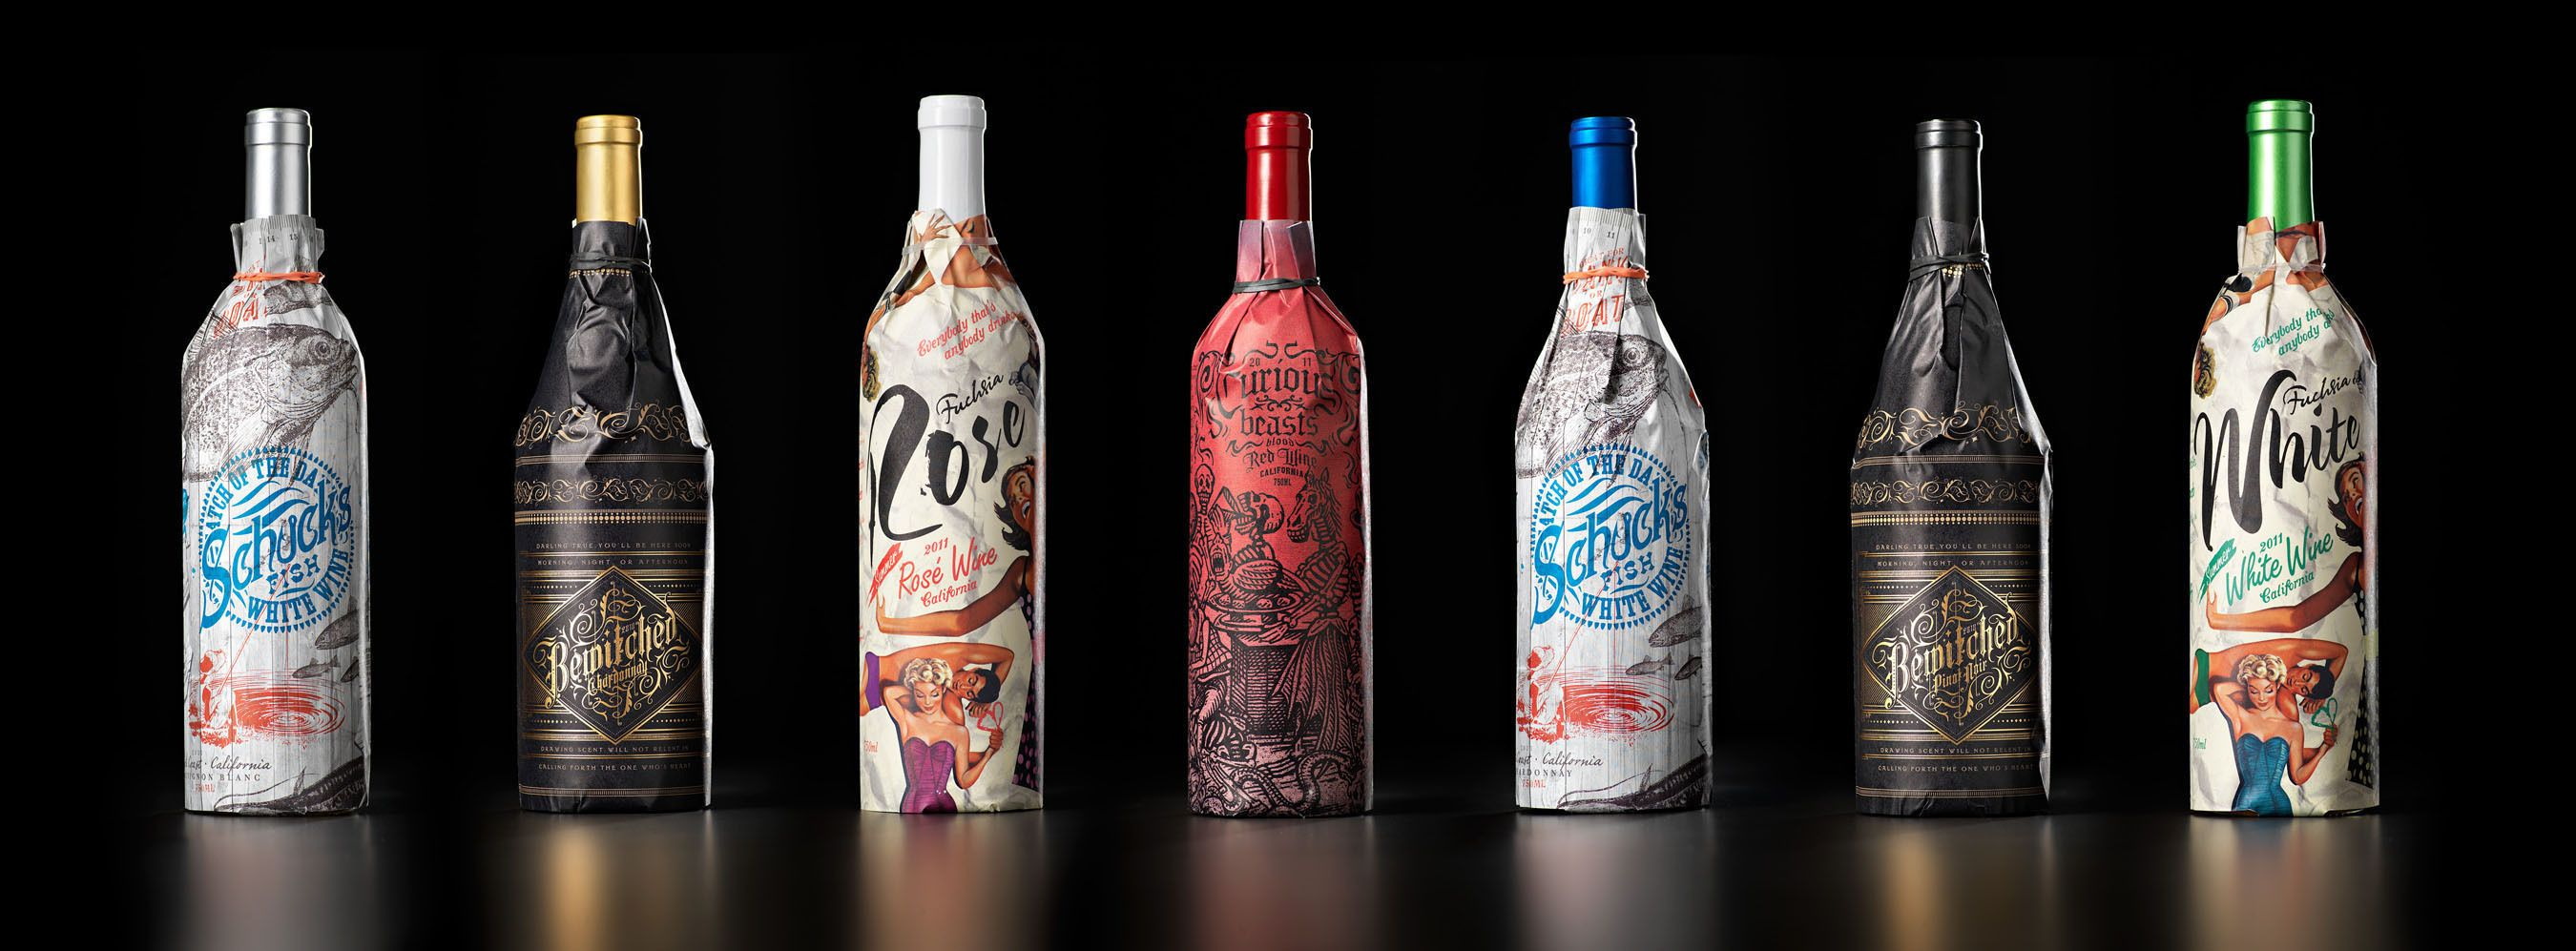 Evocative Wrapped Wine Bottles. Bottles We Admire.